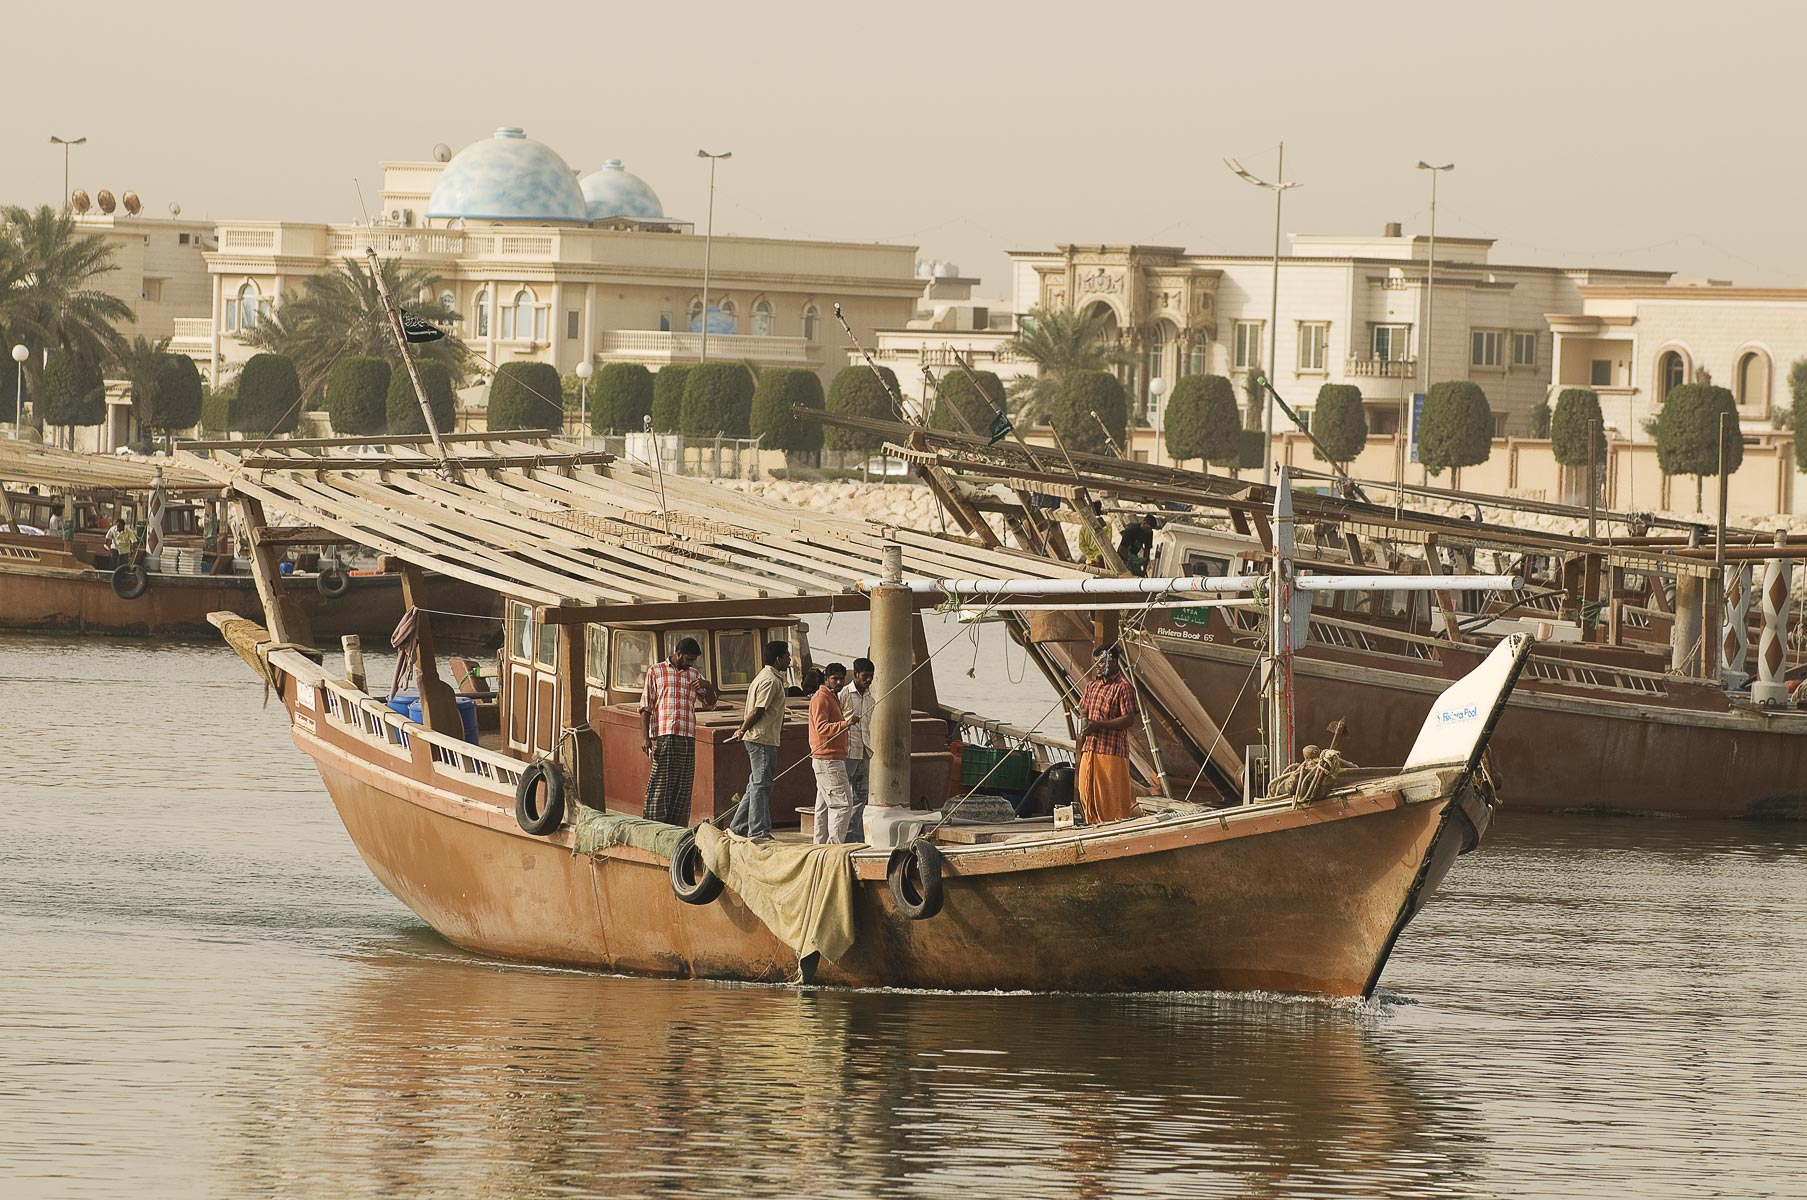 12-Qatif-Harbor-and-Boats-2323